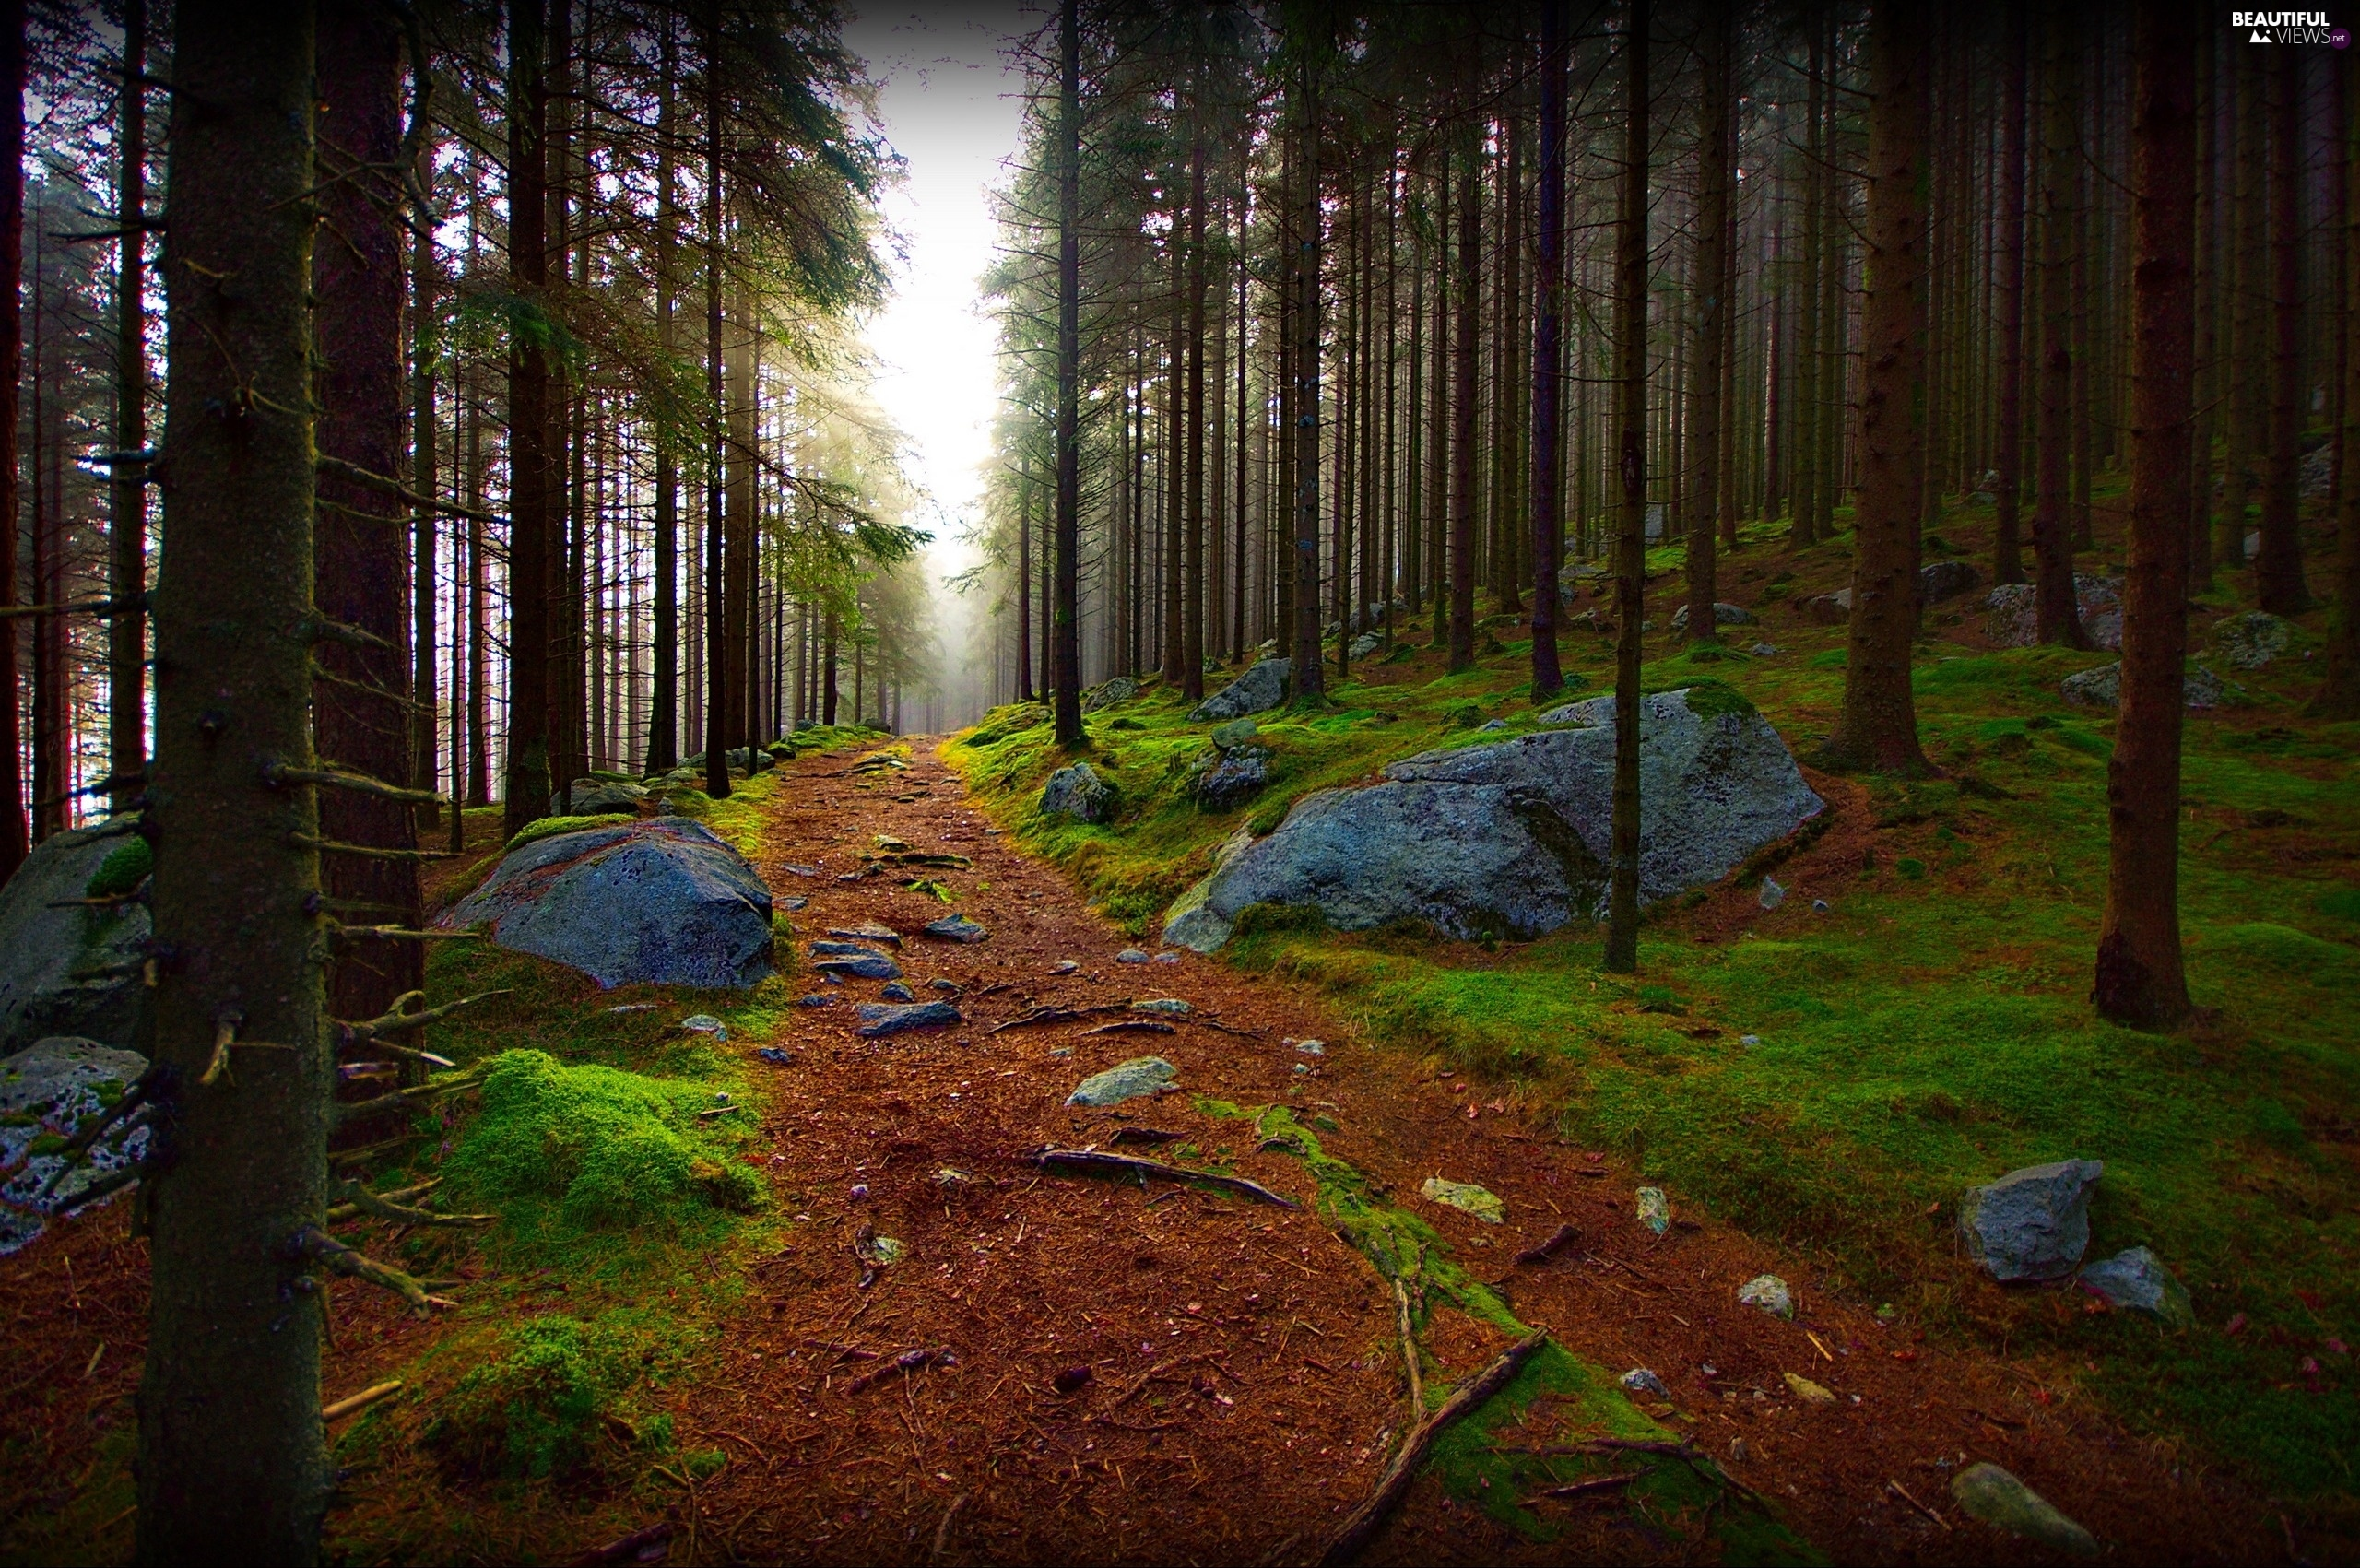 Path, Stones, trees, viewes, forest